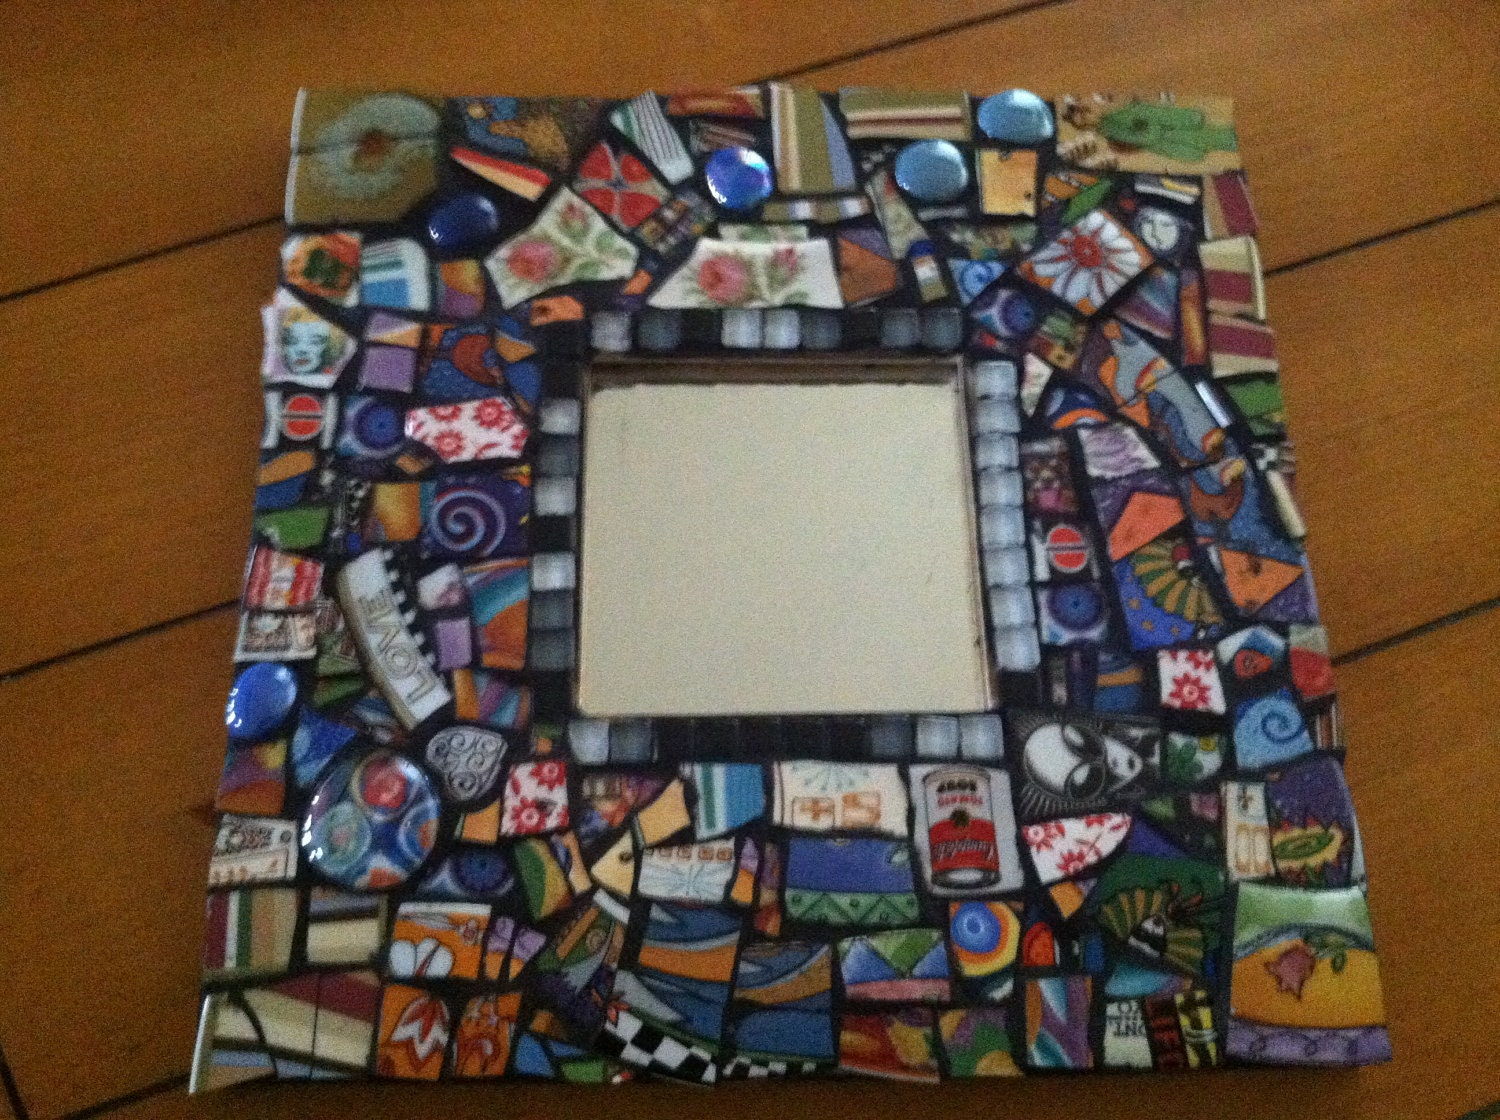 mosaic tile art colorful wall mirror broken plate face by